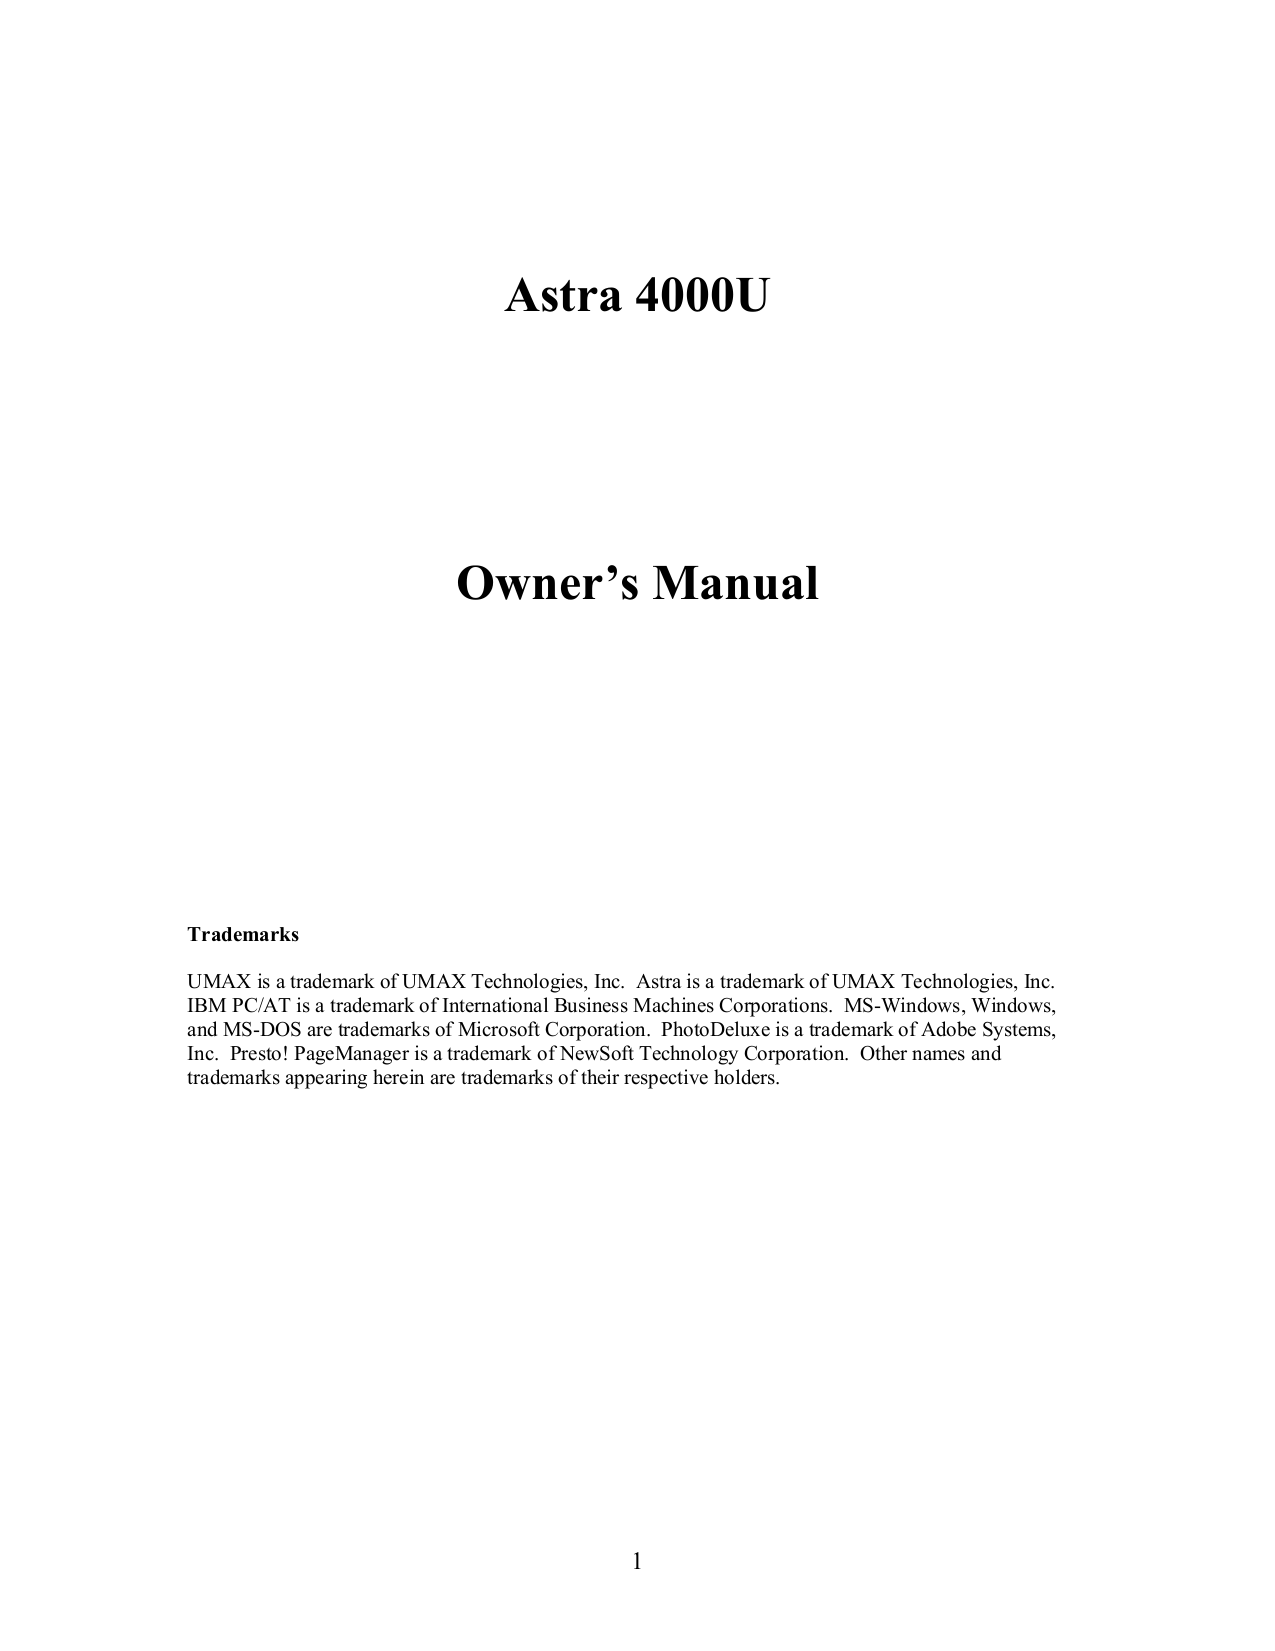 pdf for Umax Scanner Astra 4000U manual